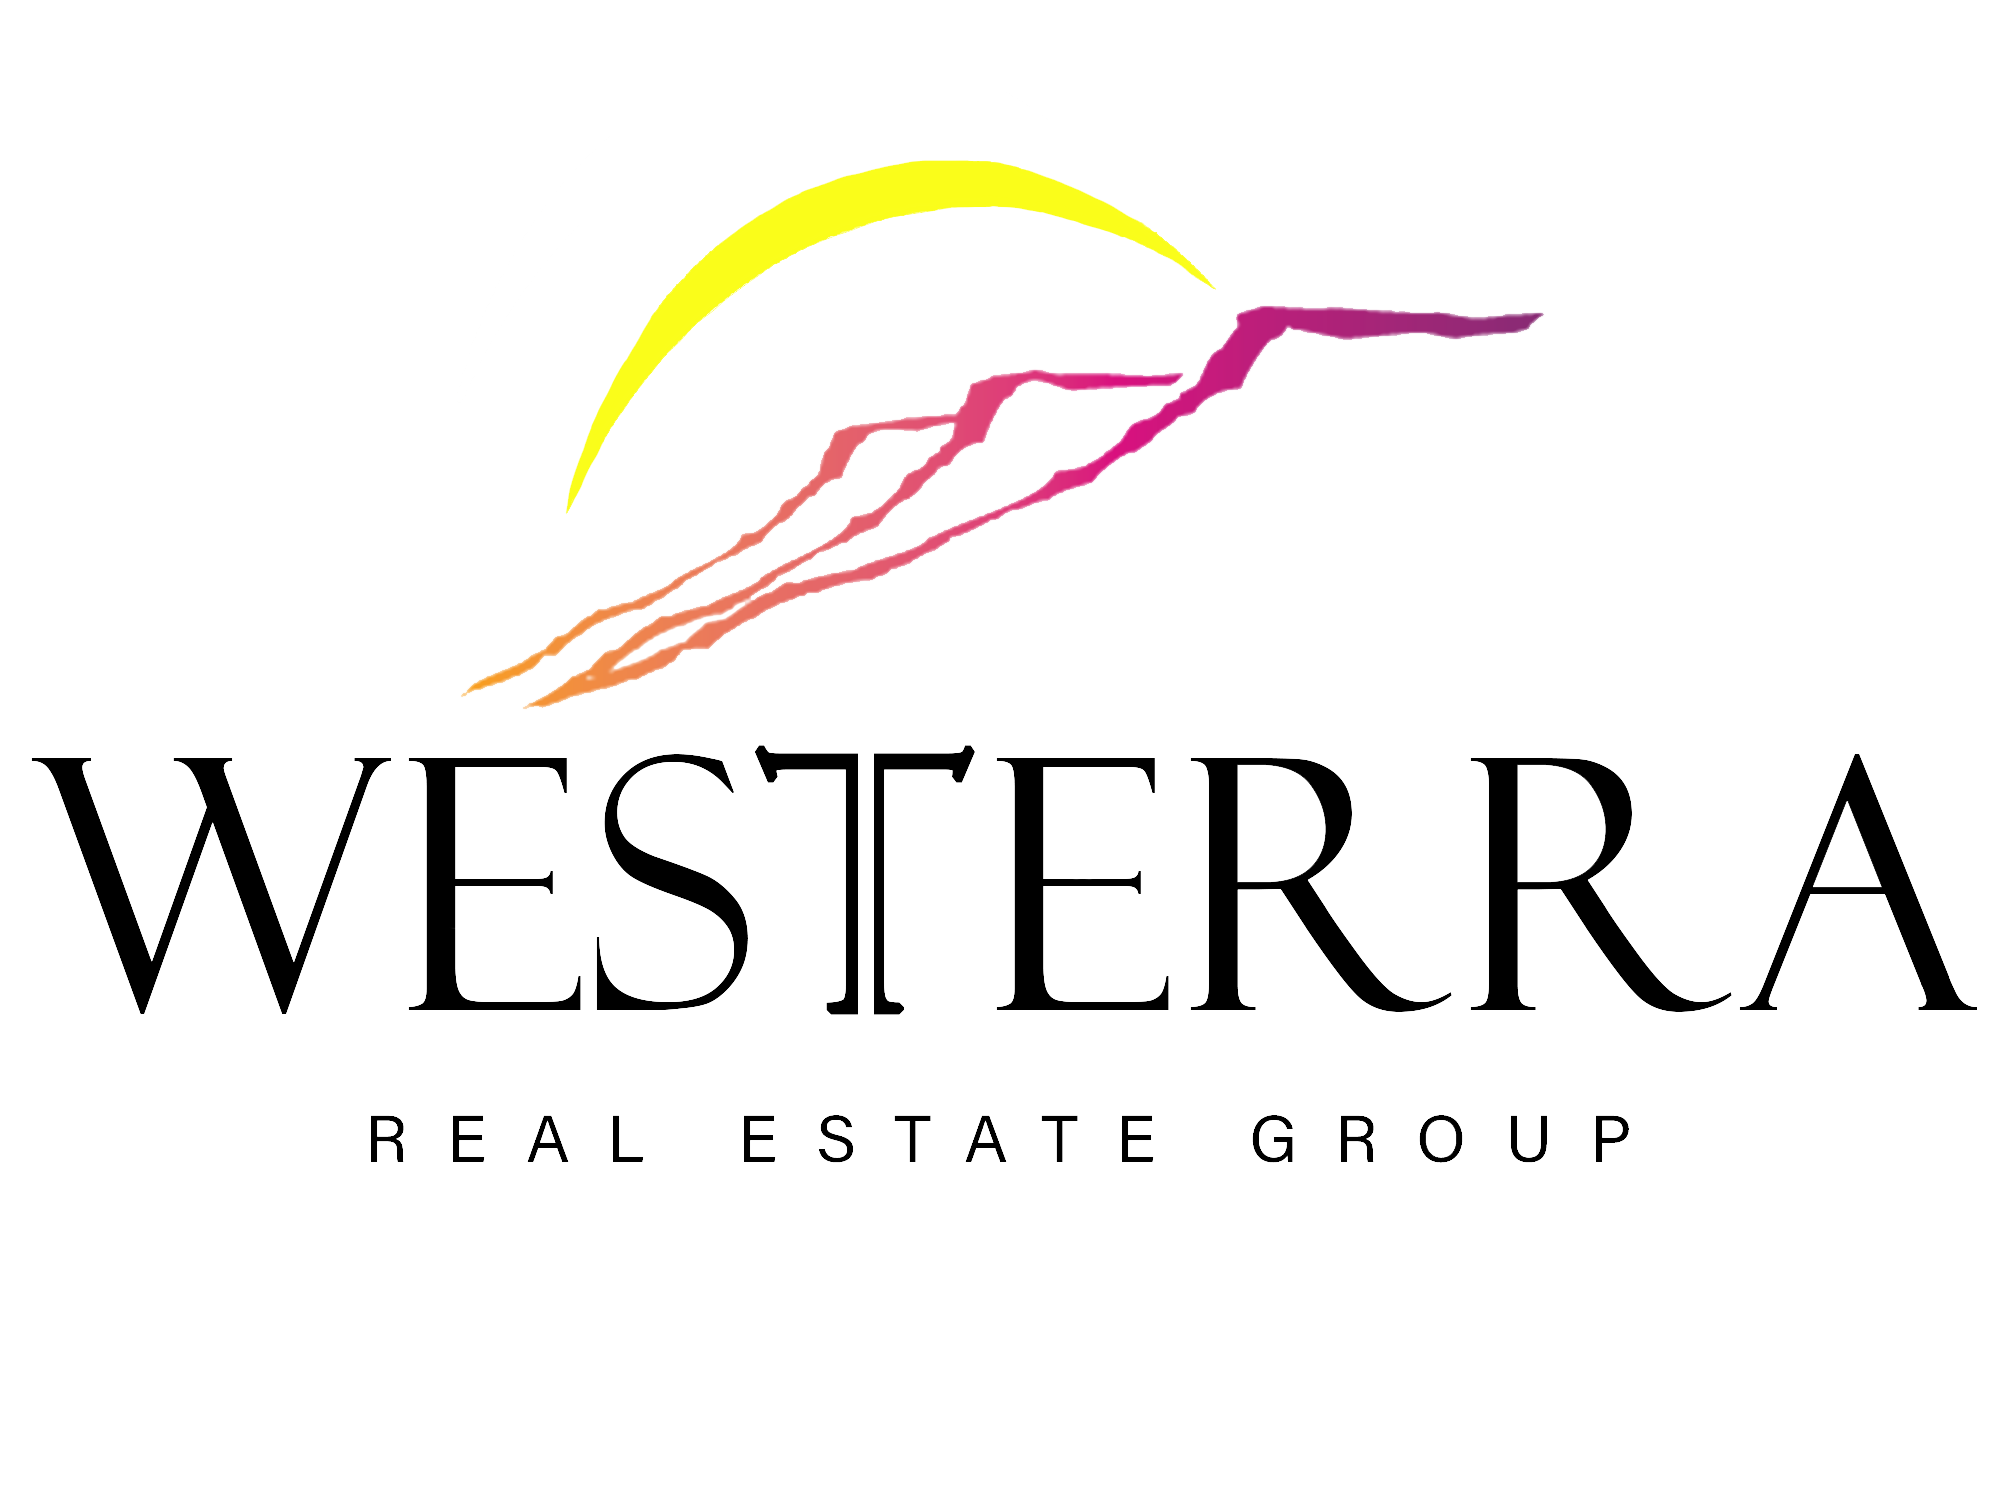 Westerra Real Estate Group Logo